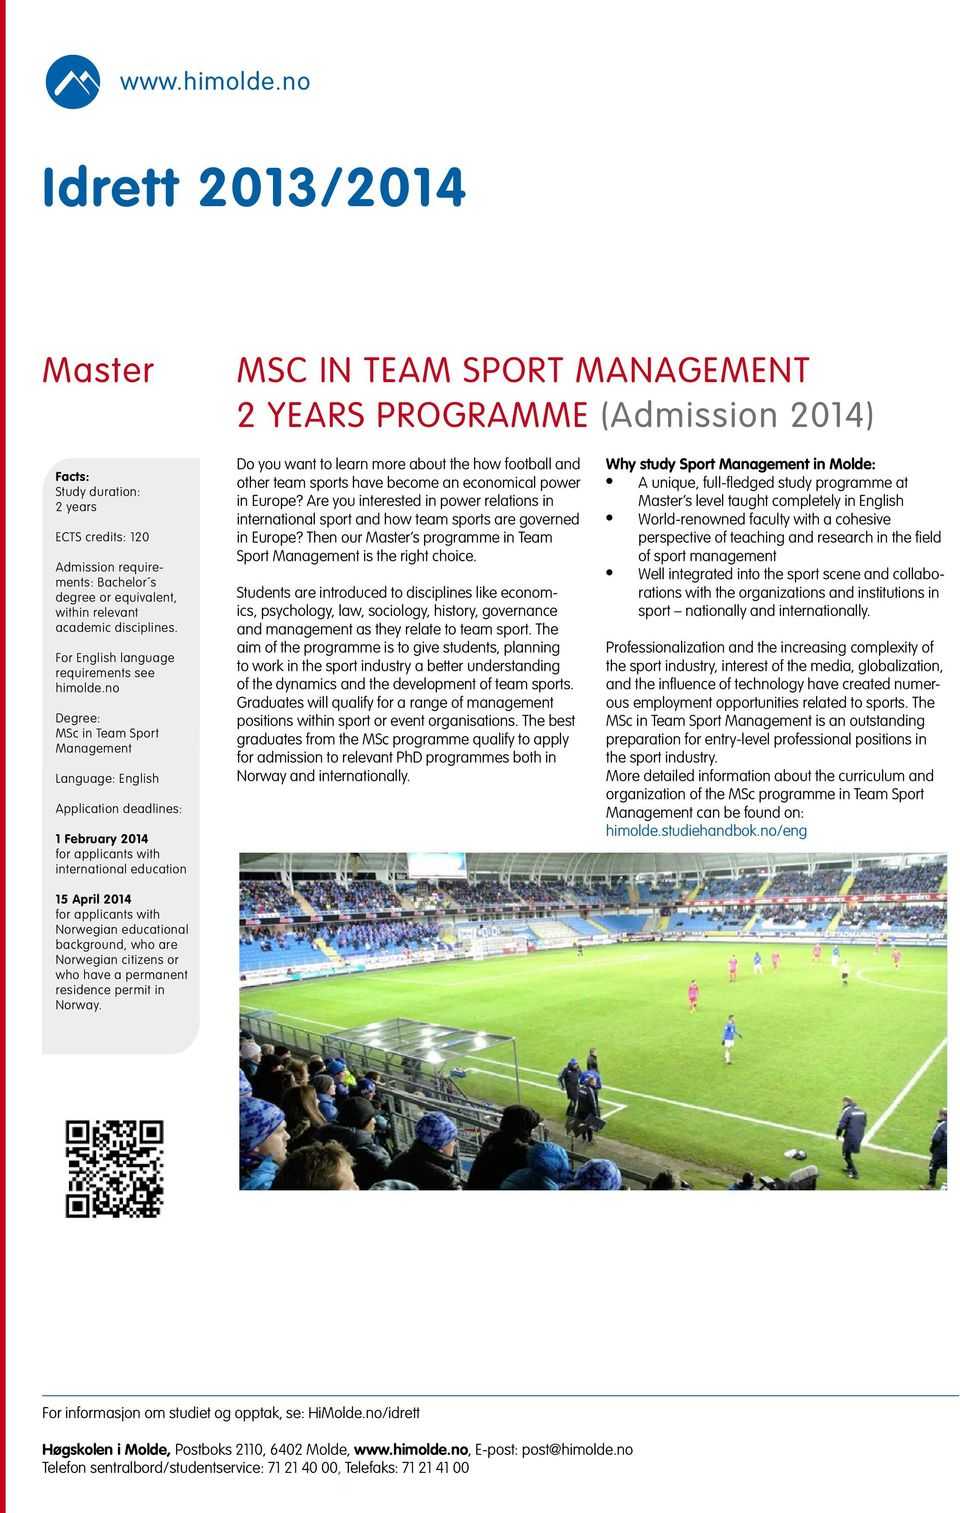 no Degree: MSc in Team Sport Management Language: English Application deadlines: 1 February 2014 for applicants with international education 15 April 2014 for applicants with Norwegian educational